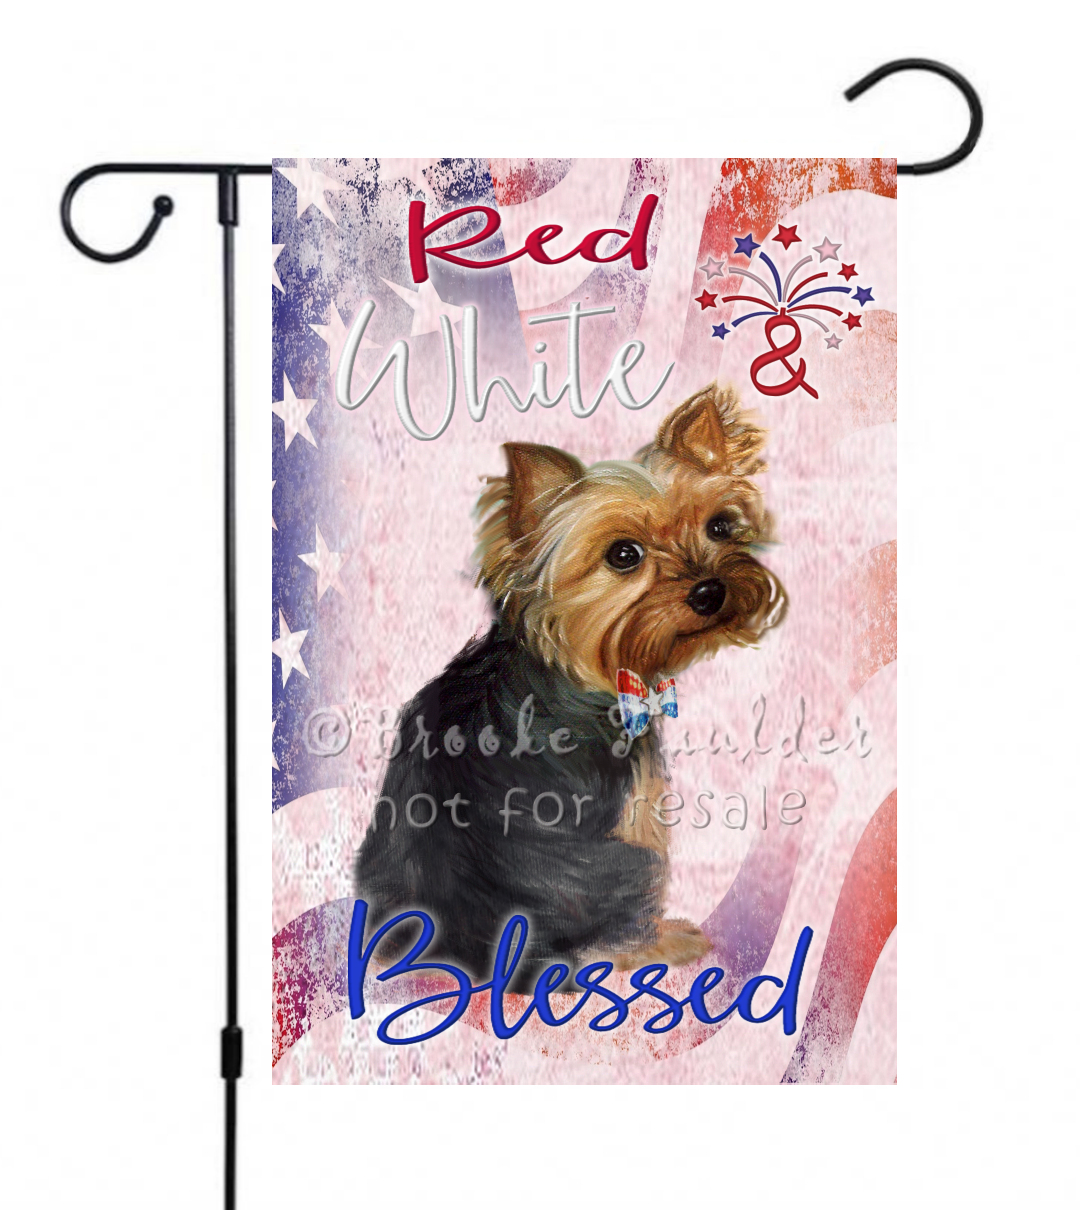 garden sized July 4th flag with Yorkshire Terrier